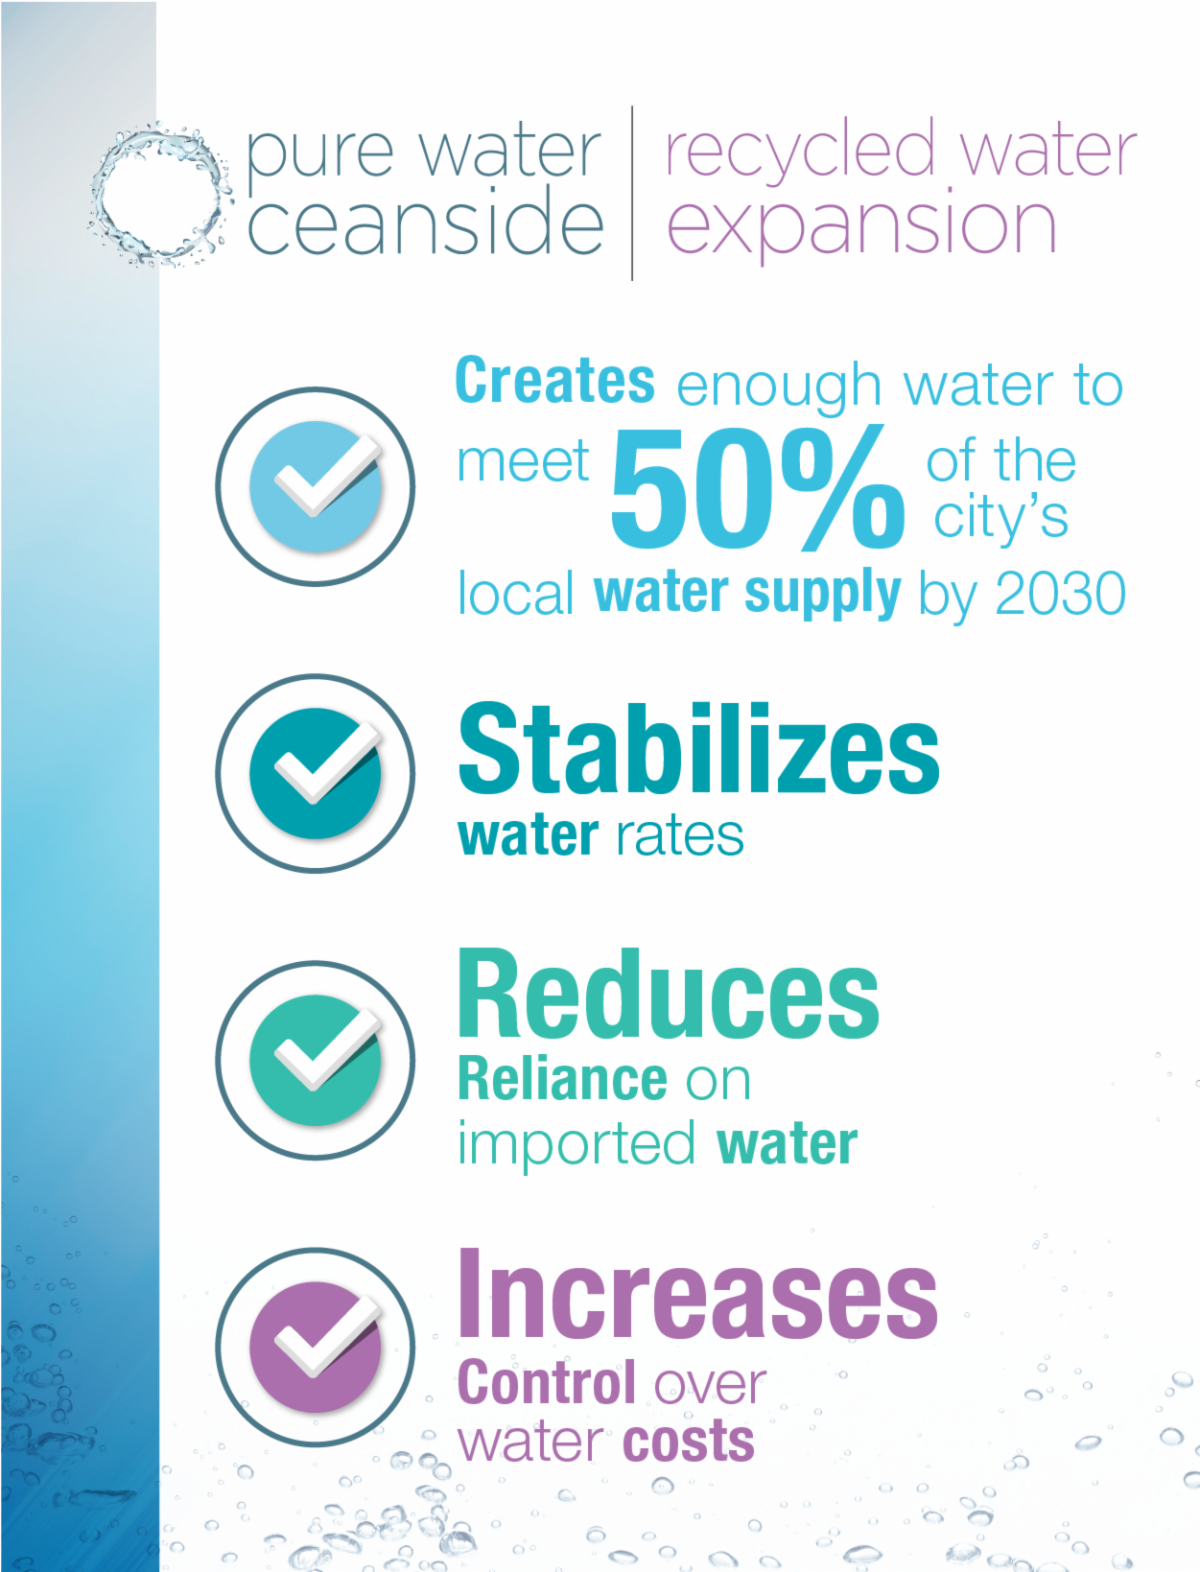 Pure Water Oceanside and Recycled Water Has Many Benefits